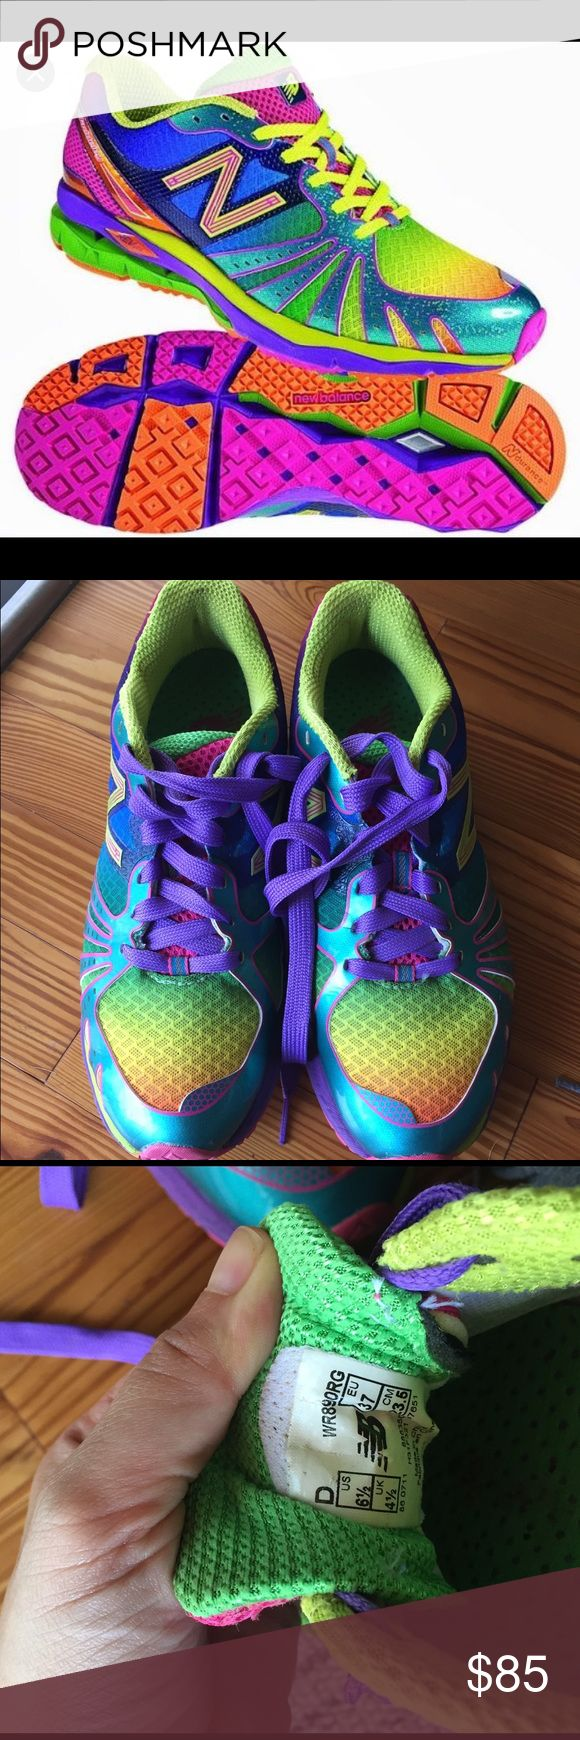 New balance 890 Revlite Rainbow running shoes RARE New Balance 890 Revlite Rainbow running shoes. Absolutely stunning! Women's Size 6.5D (I think D means wide, but my foot's not wide and they fit me fine). No box. Only worn a few times, very good used condition. New Balance Shoes Athletic Shoes